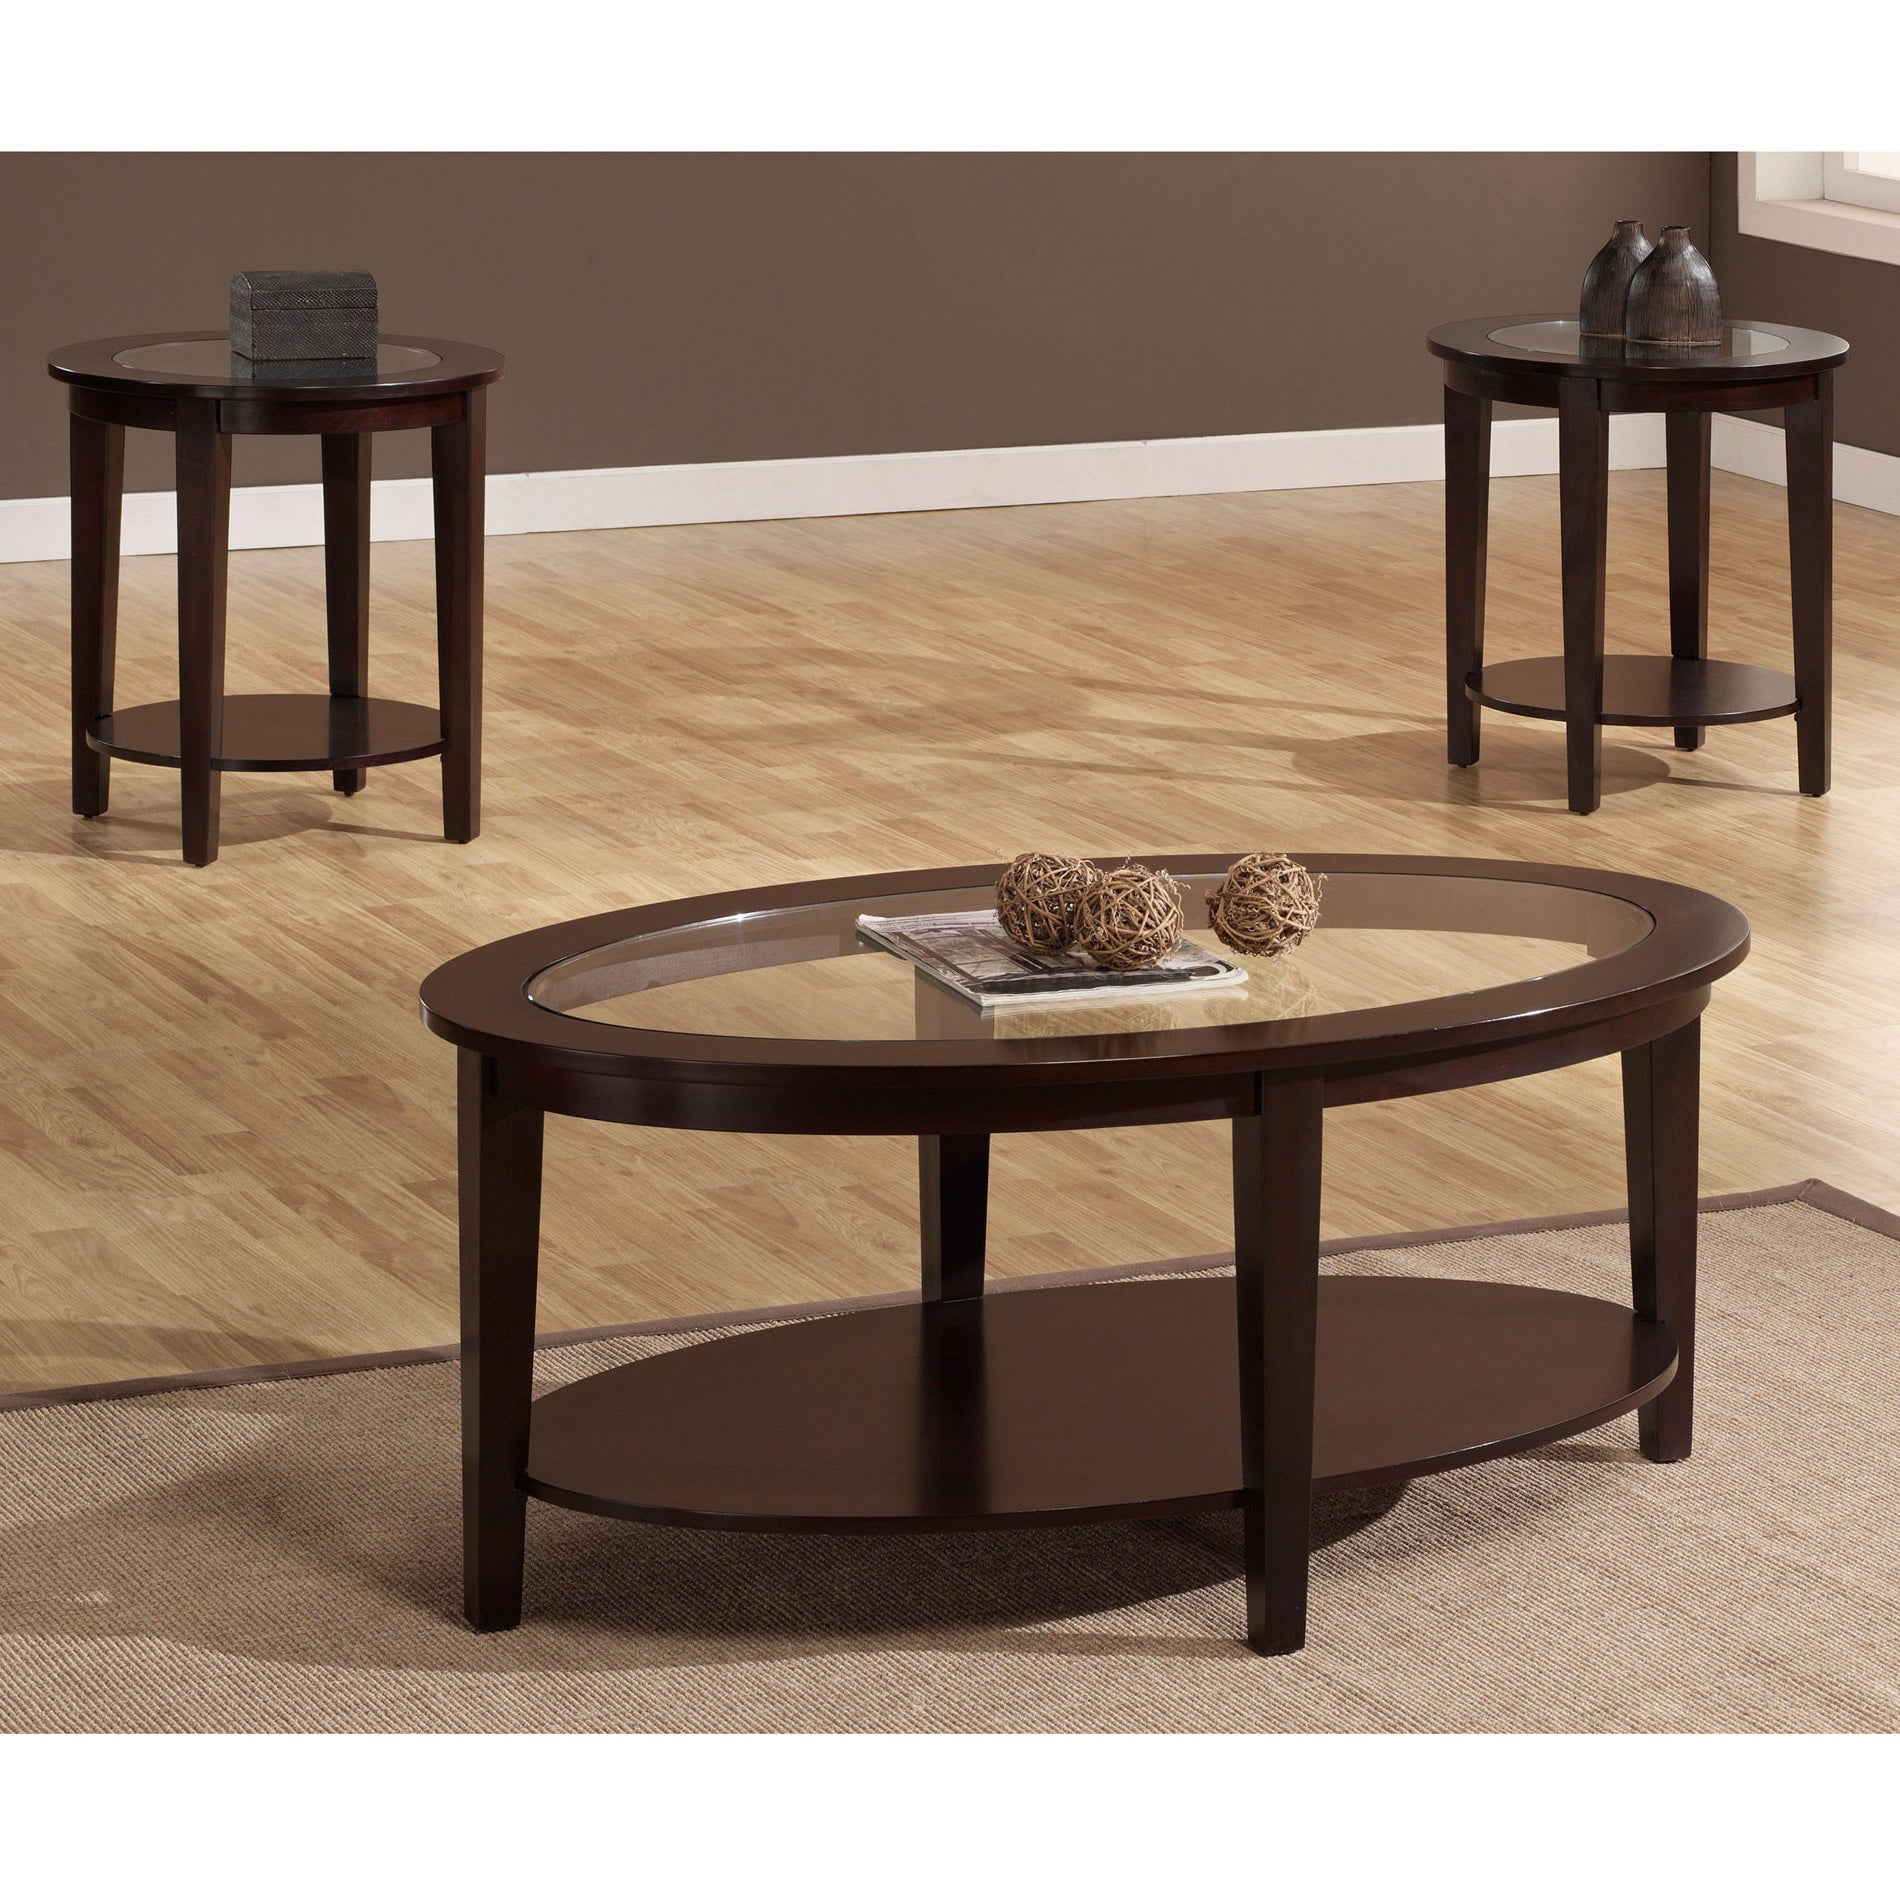 Stones \u0026 Stripes Oval 3-piece Table Set - Free Shipping Today - Overstock - 13728081  sc 1 st  Overstock.com & Stones \u0026 Stripes Oval 3-piece Table Set - Free Shipping Today ...